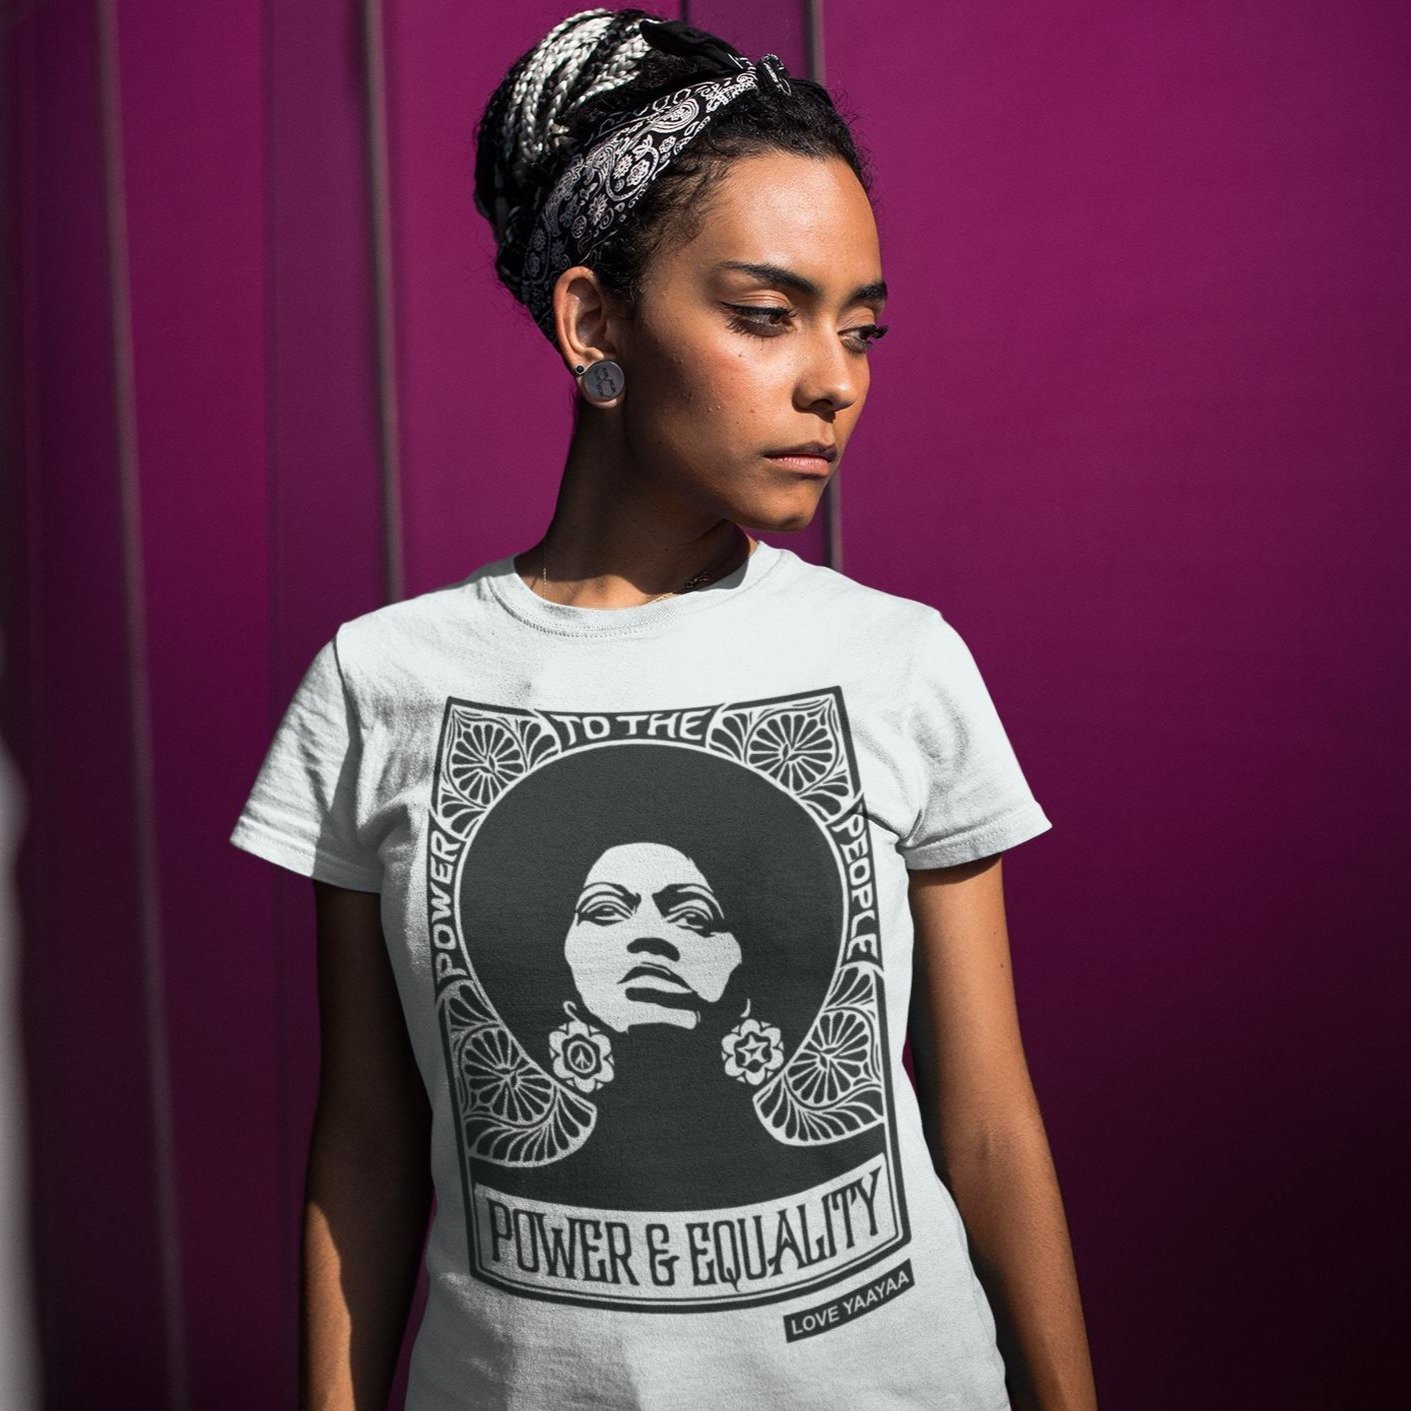 Power and Equality Women's Fit Tee - loveyaayaa